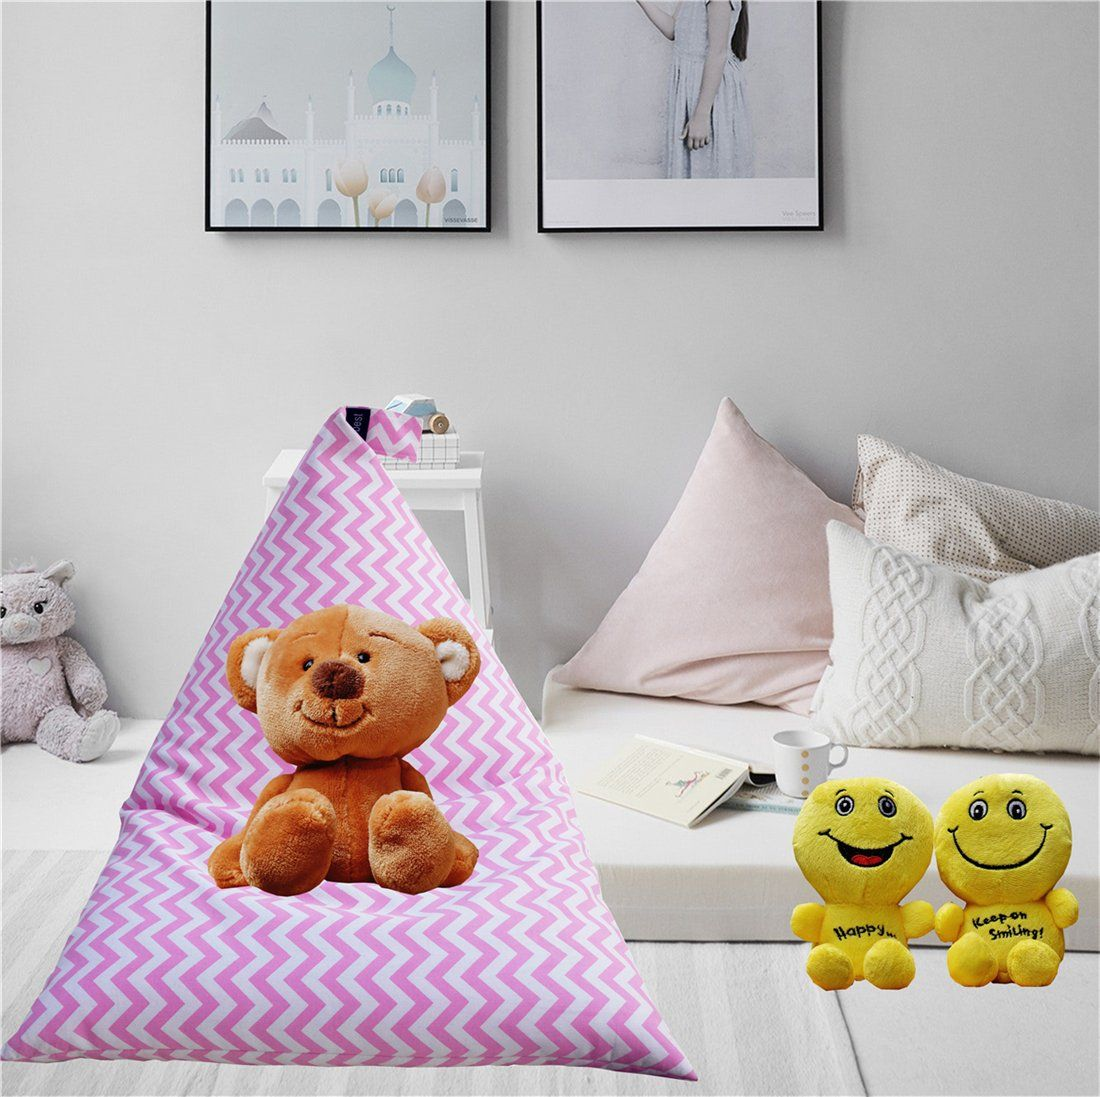 Swell Kids Bean Bag Chair Extralarge Toy Storage Capacity With Inzonedesignstudio Interior Chair Design Inzonedesignstudiocom